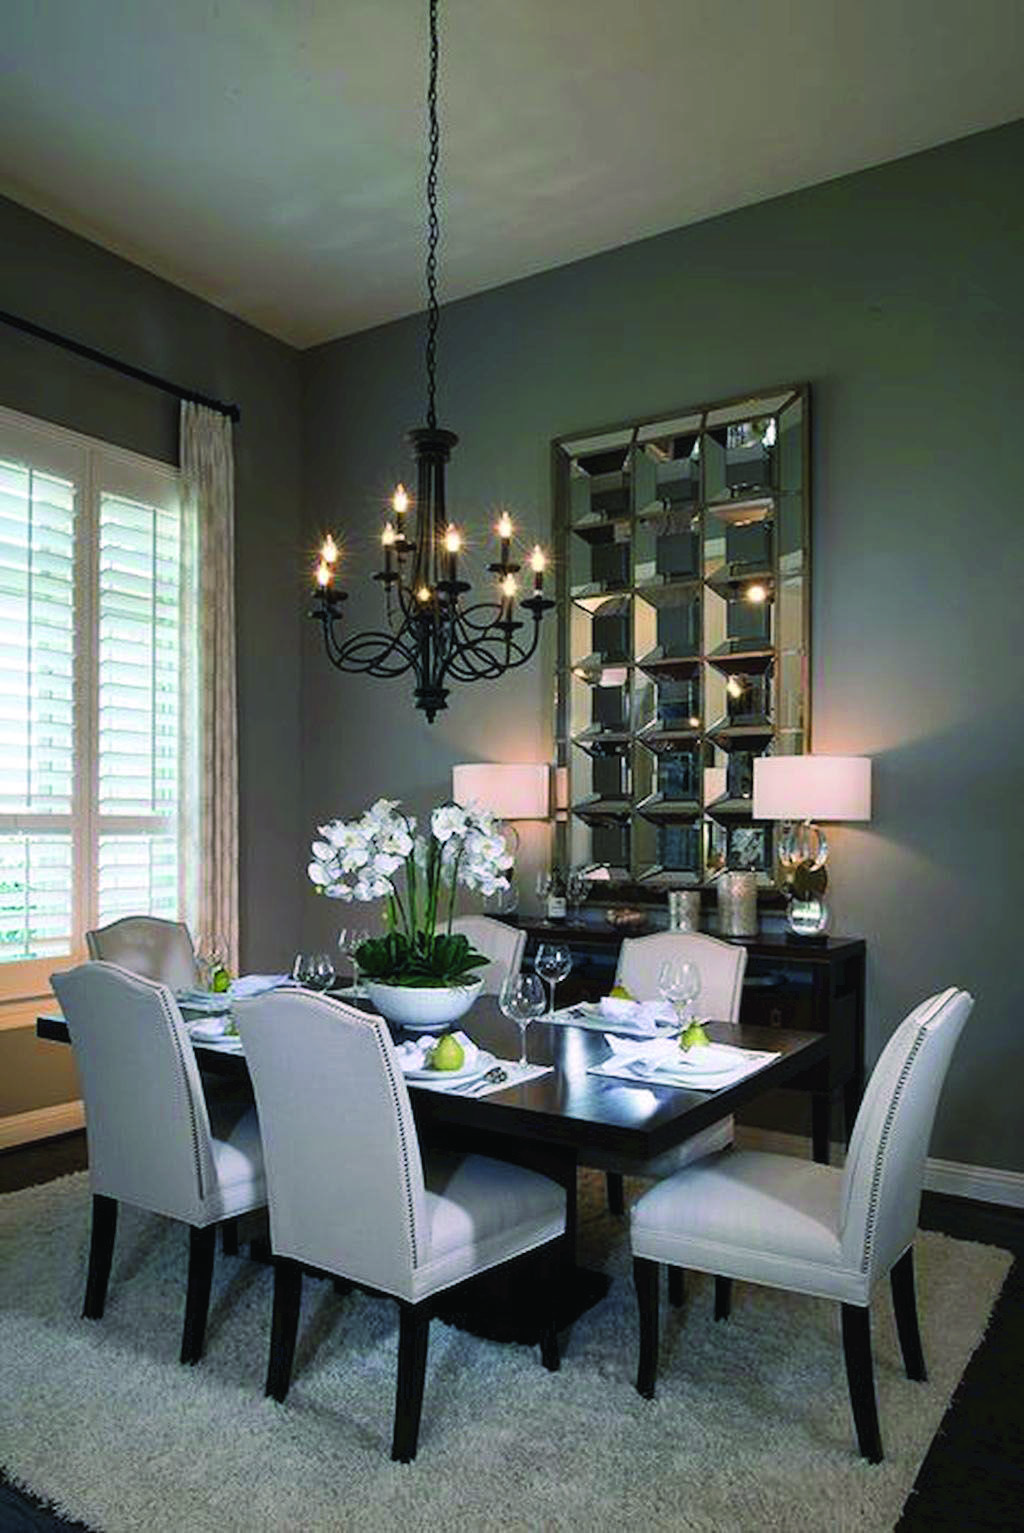 Small dining room ideas to take advantage of your space ...